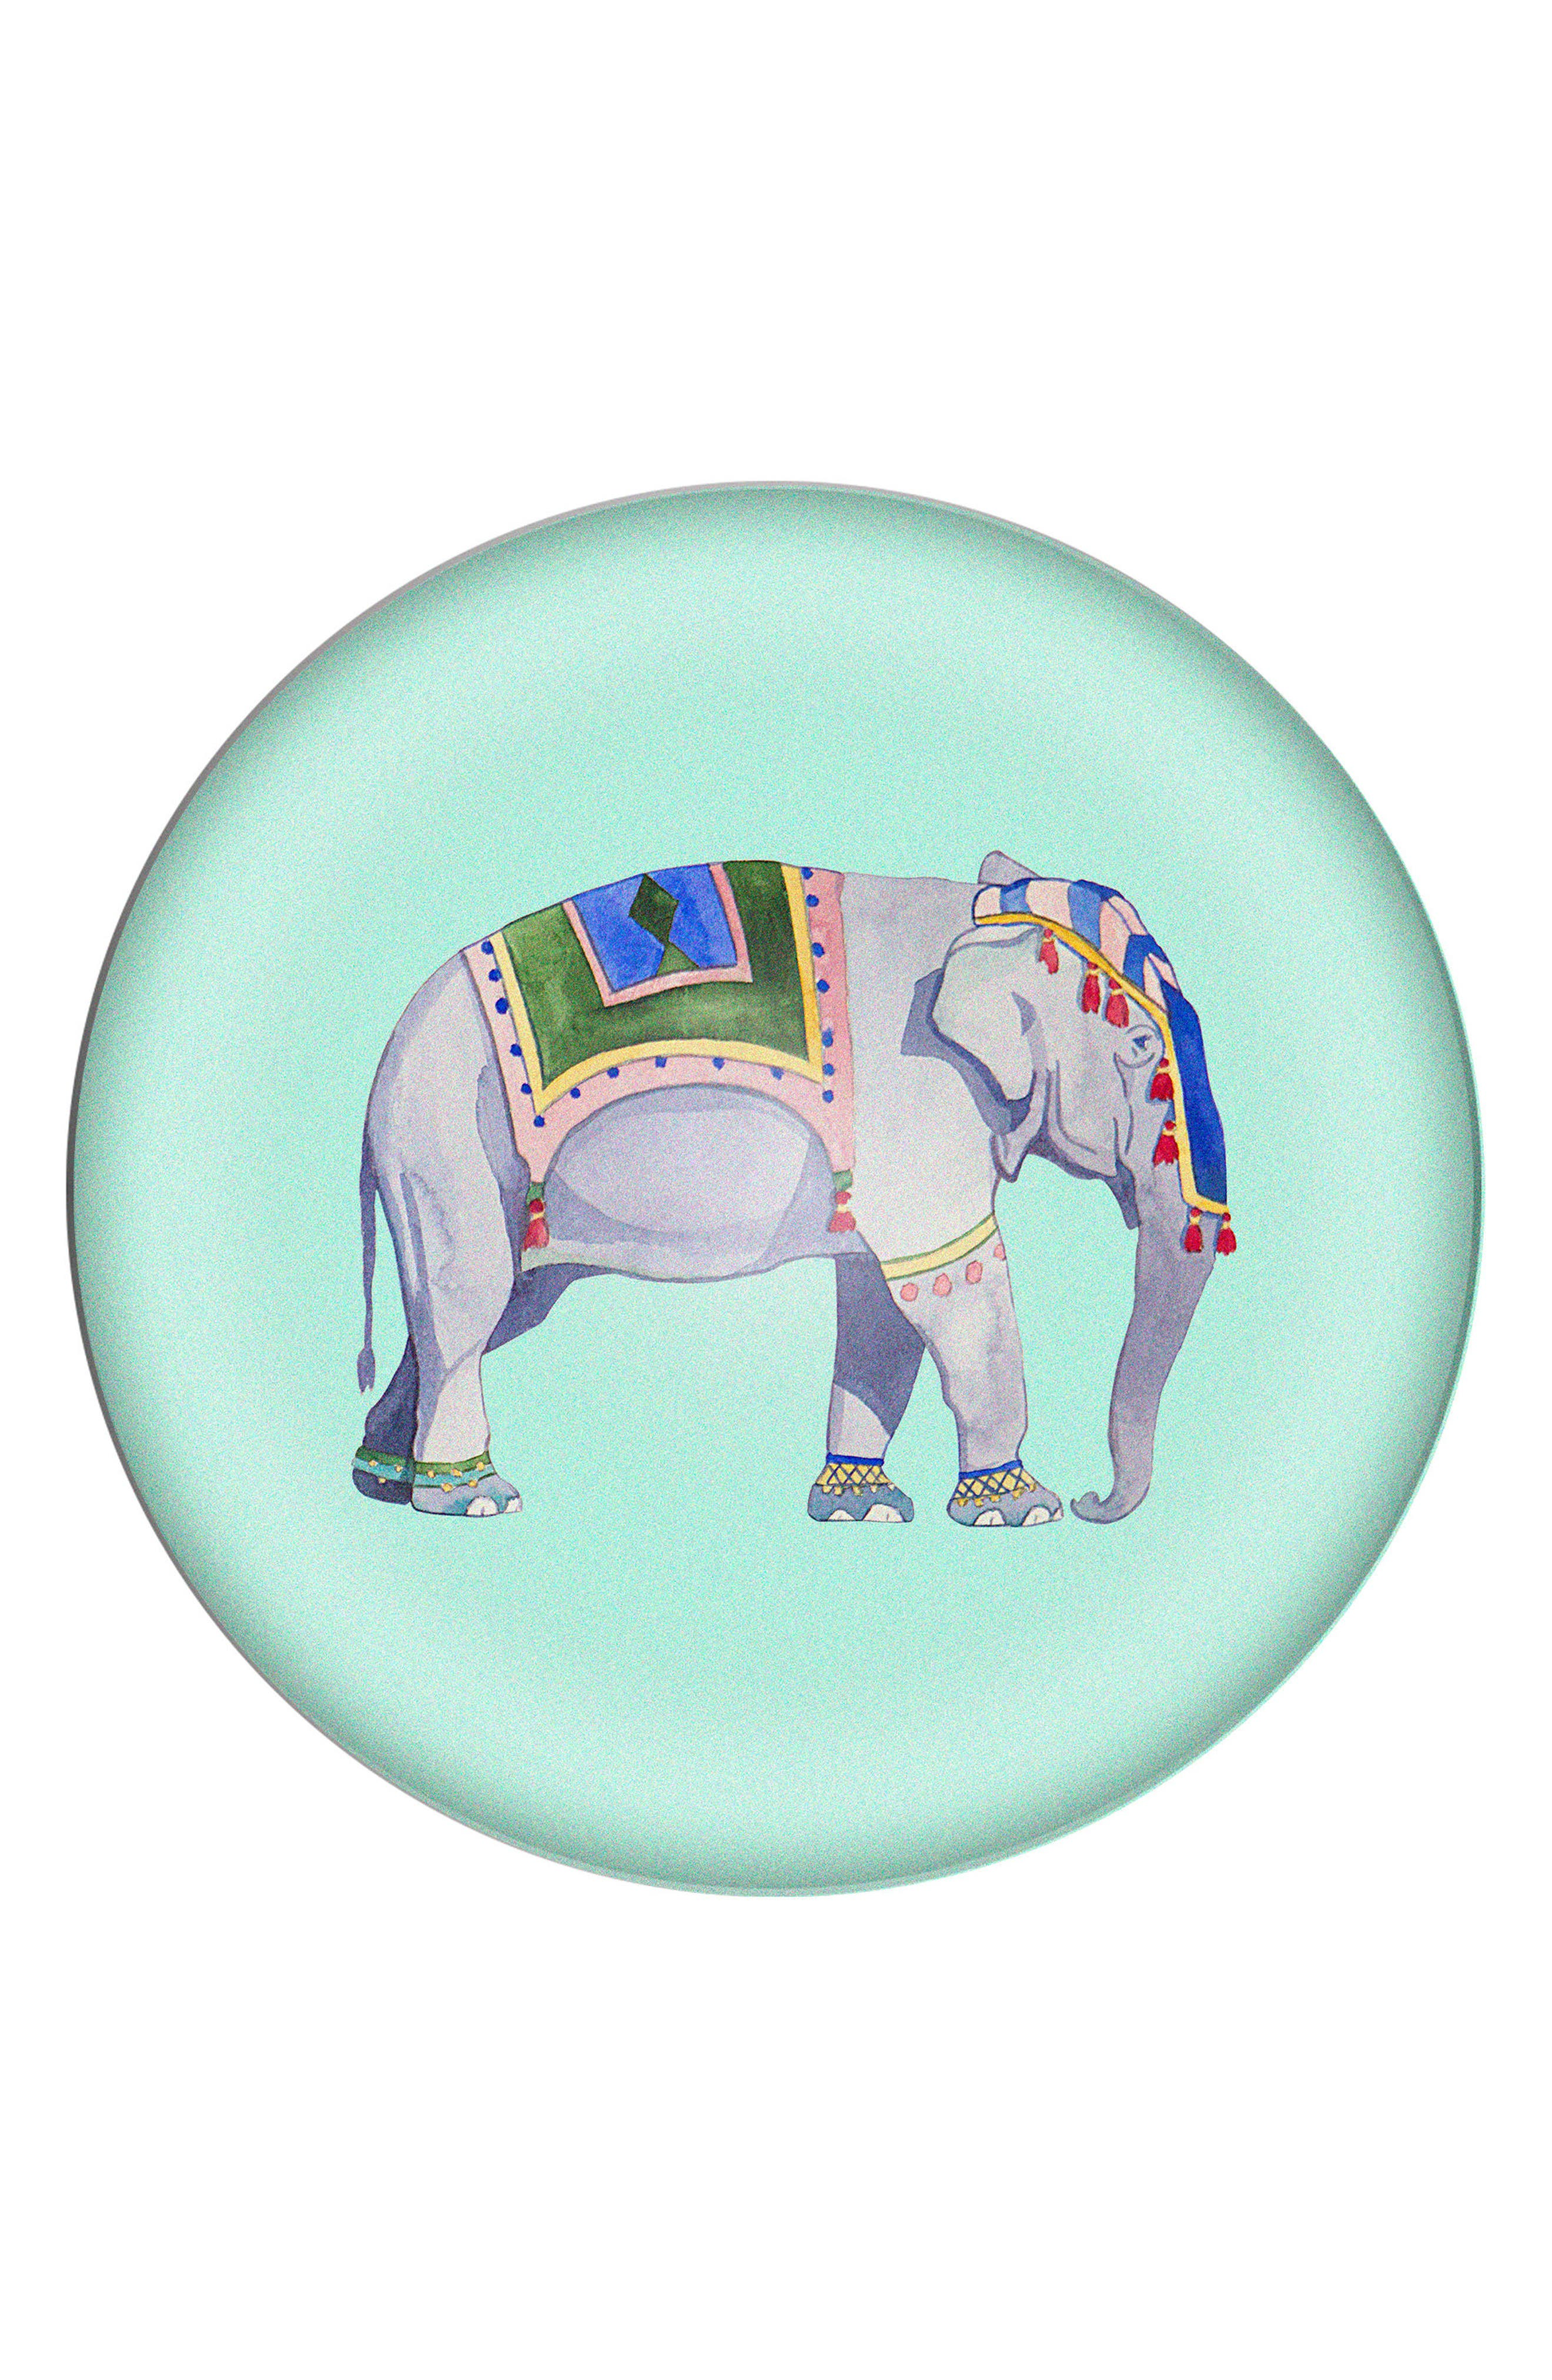 Elephant Domed Glass Paperweight,                         Main,                         color, 400